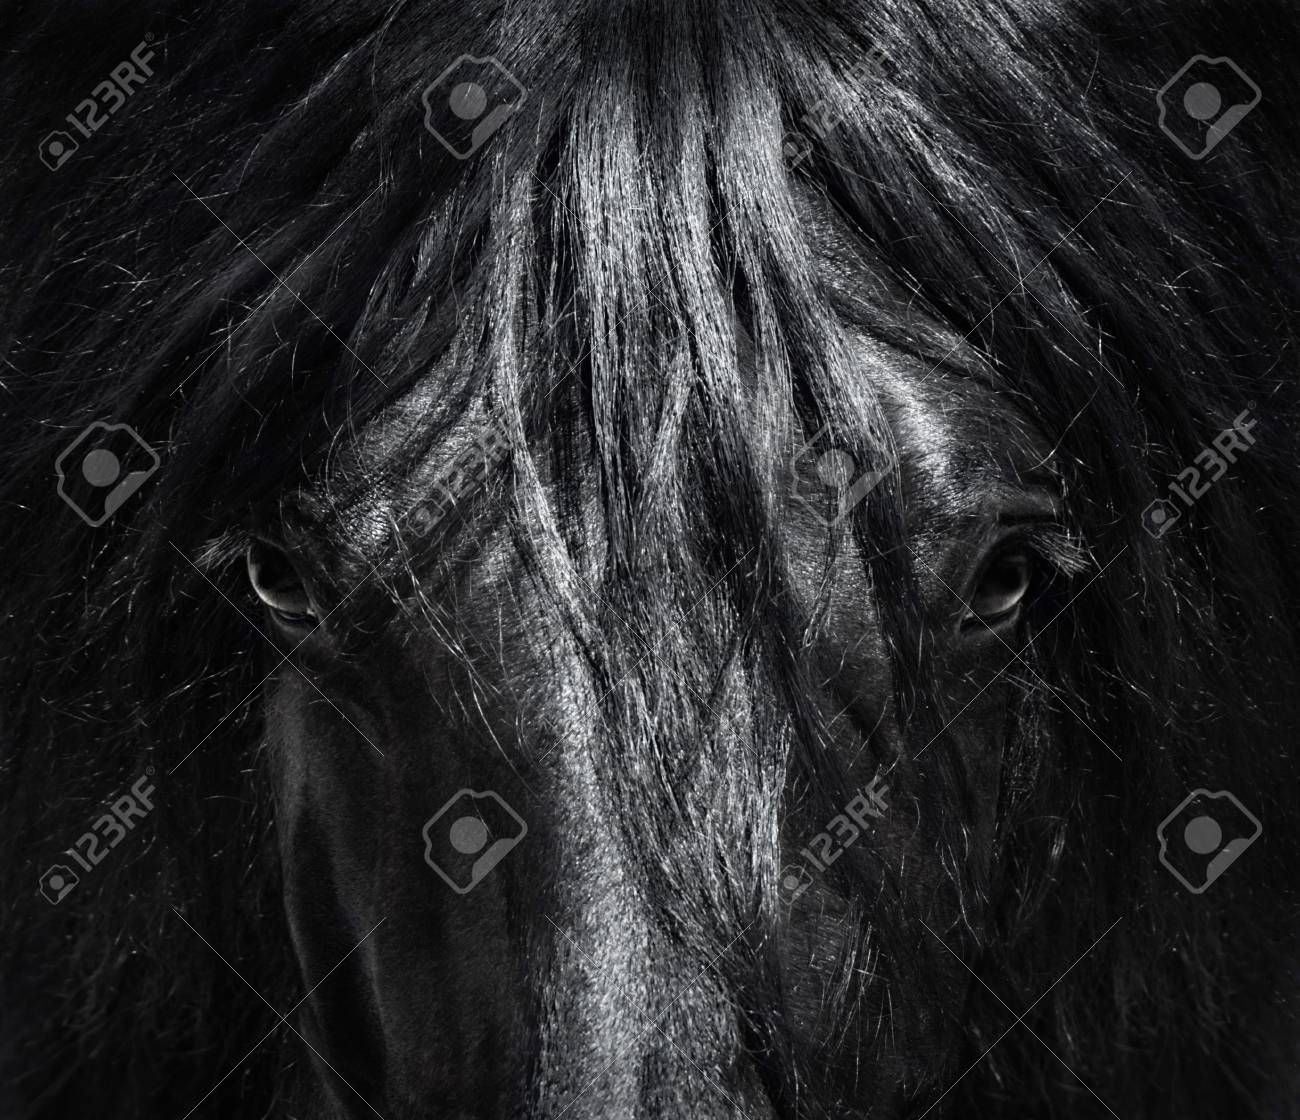 Portrait close up spanish purebred horse with long mane black and white photo